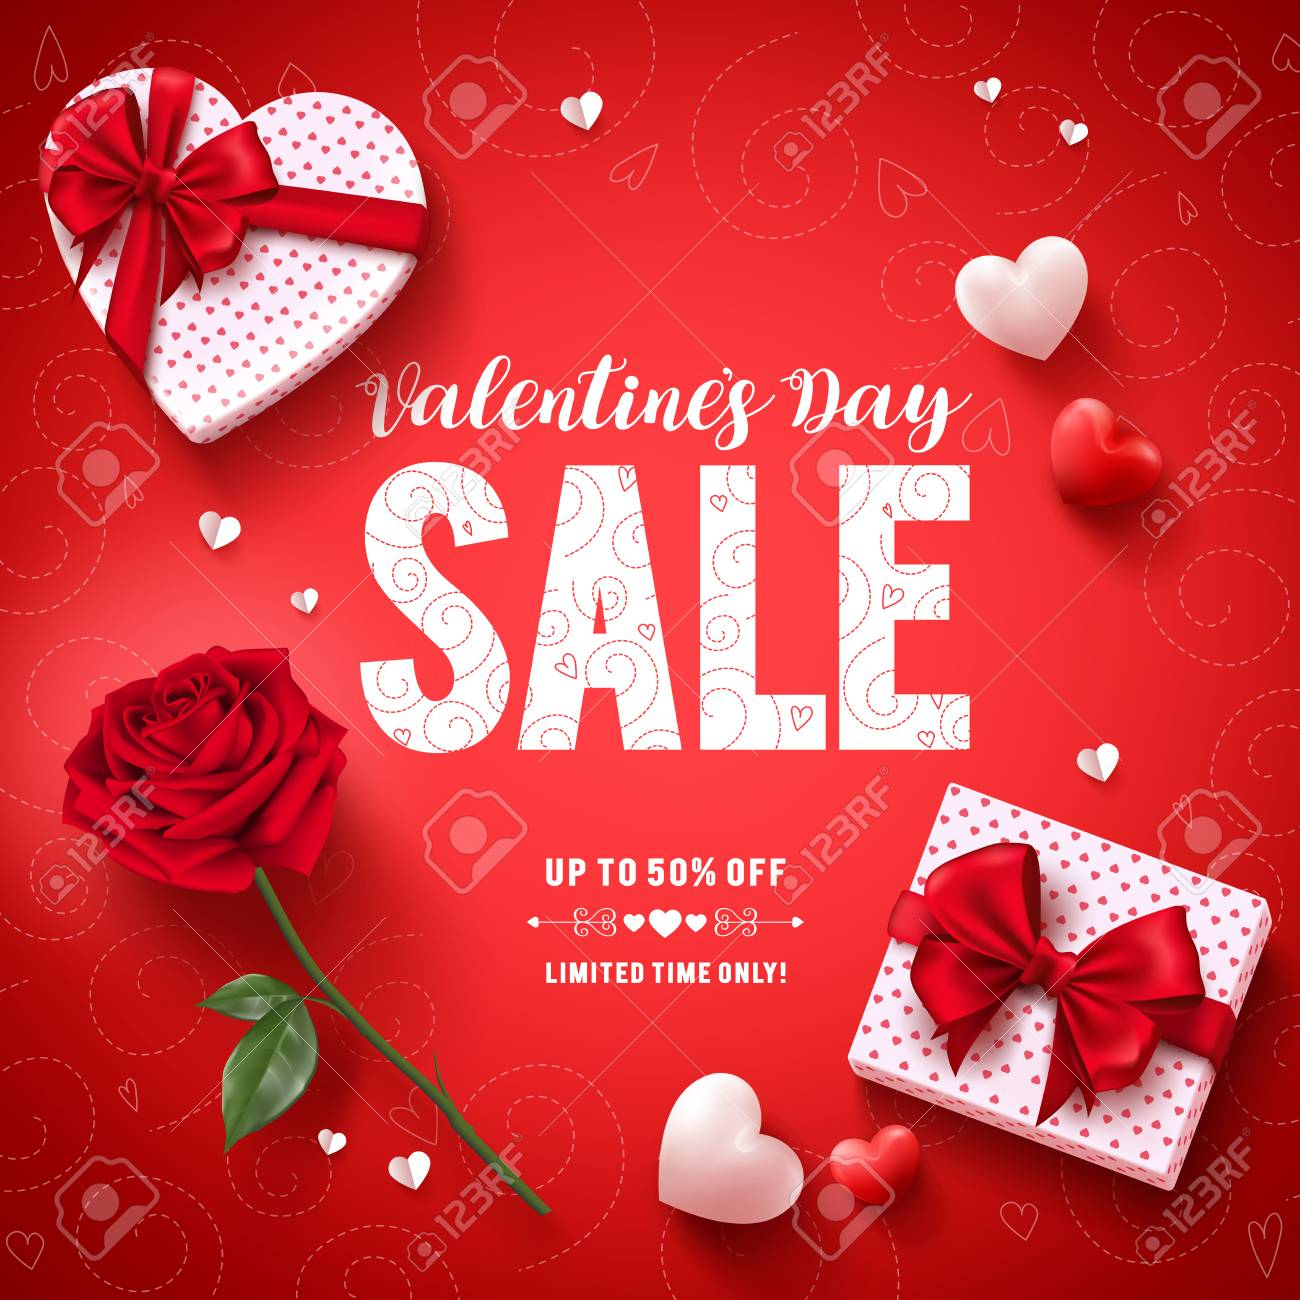 Valentines Day Sale Text Vector Banner Design With Love Gifts